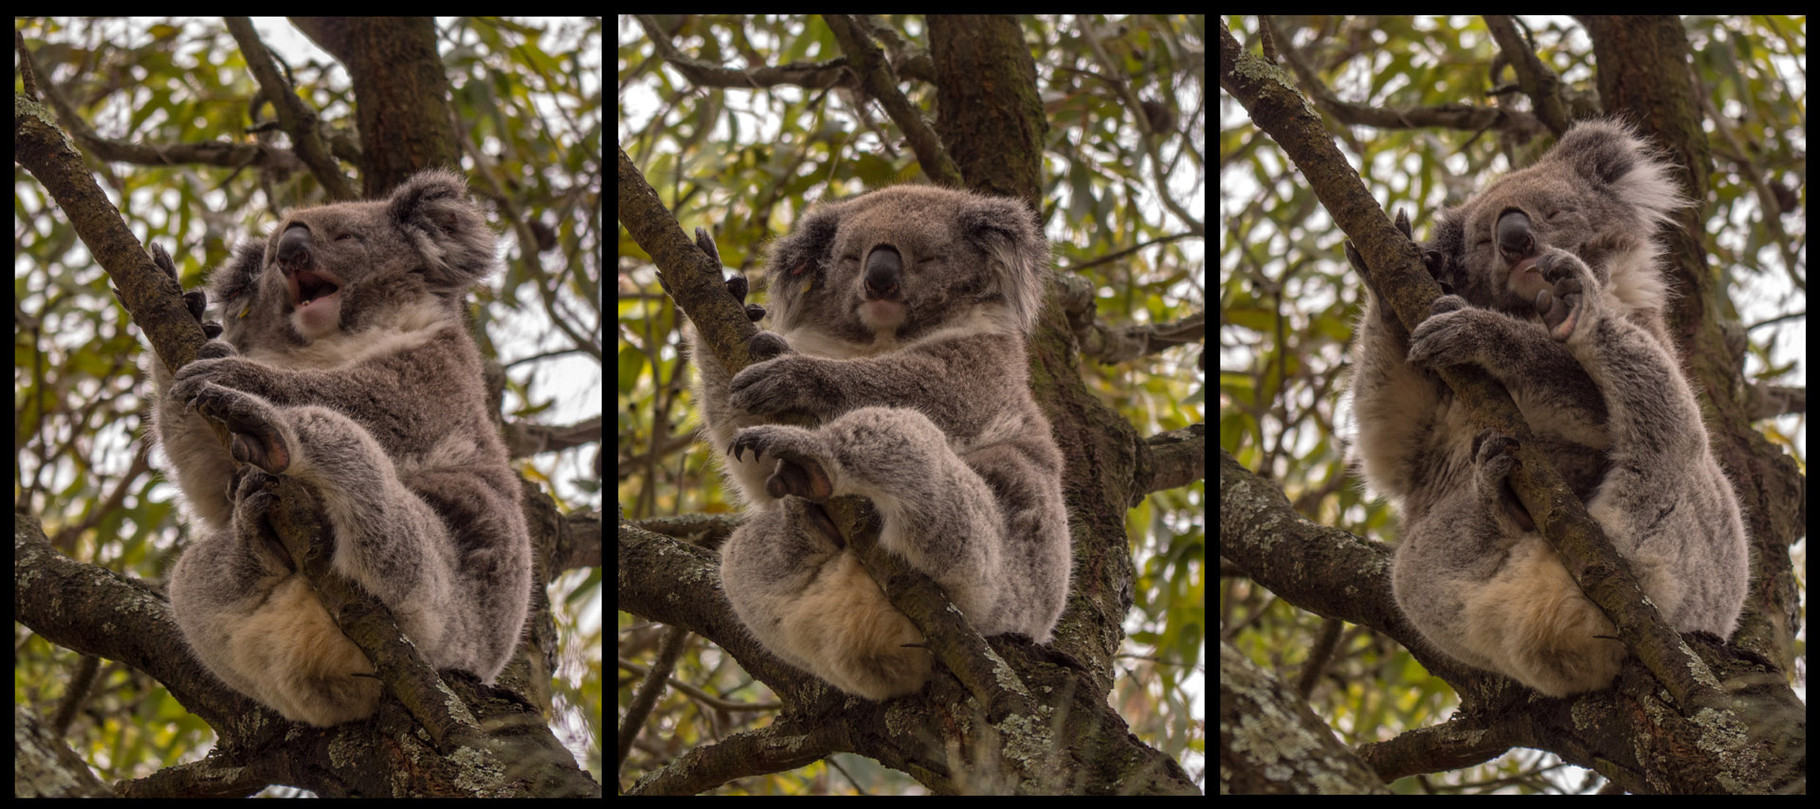 Koalas, near Kennet Bay, Great Ocean Road